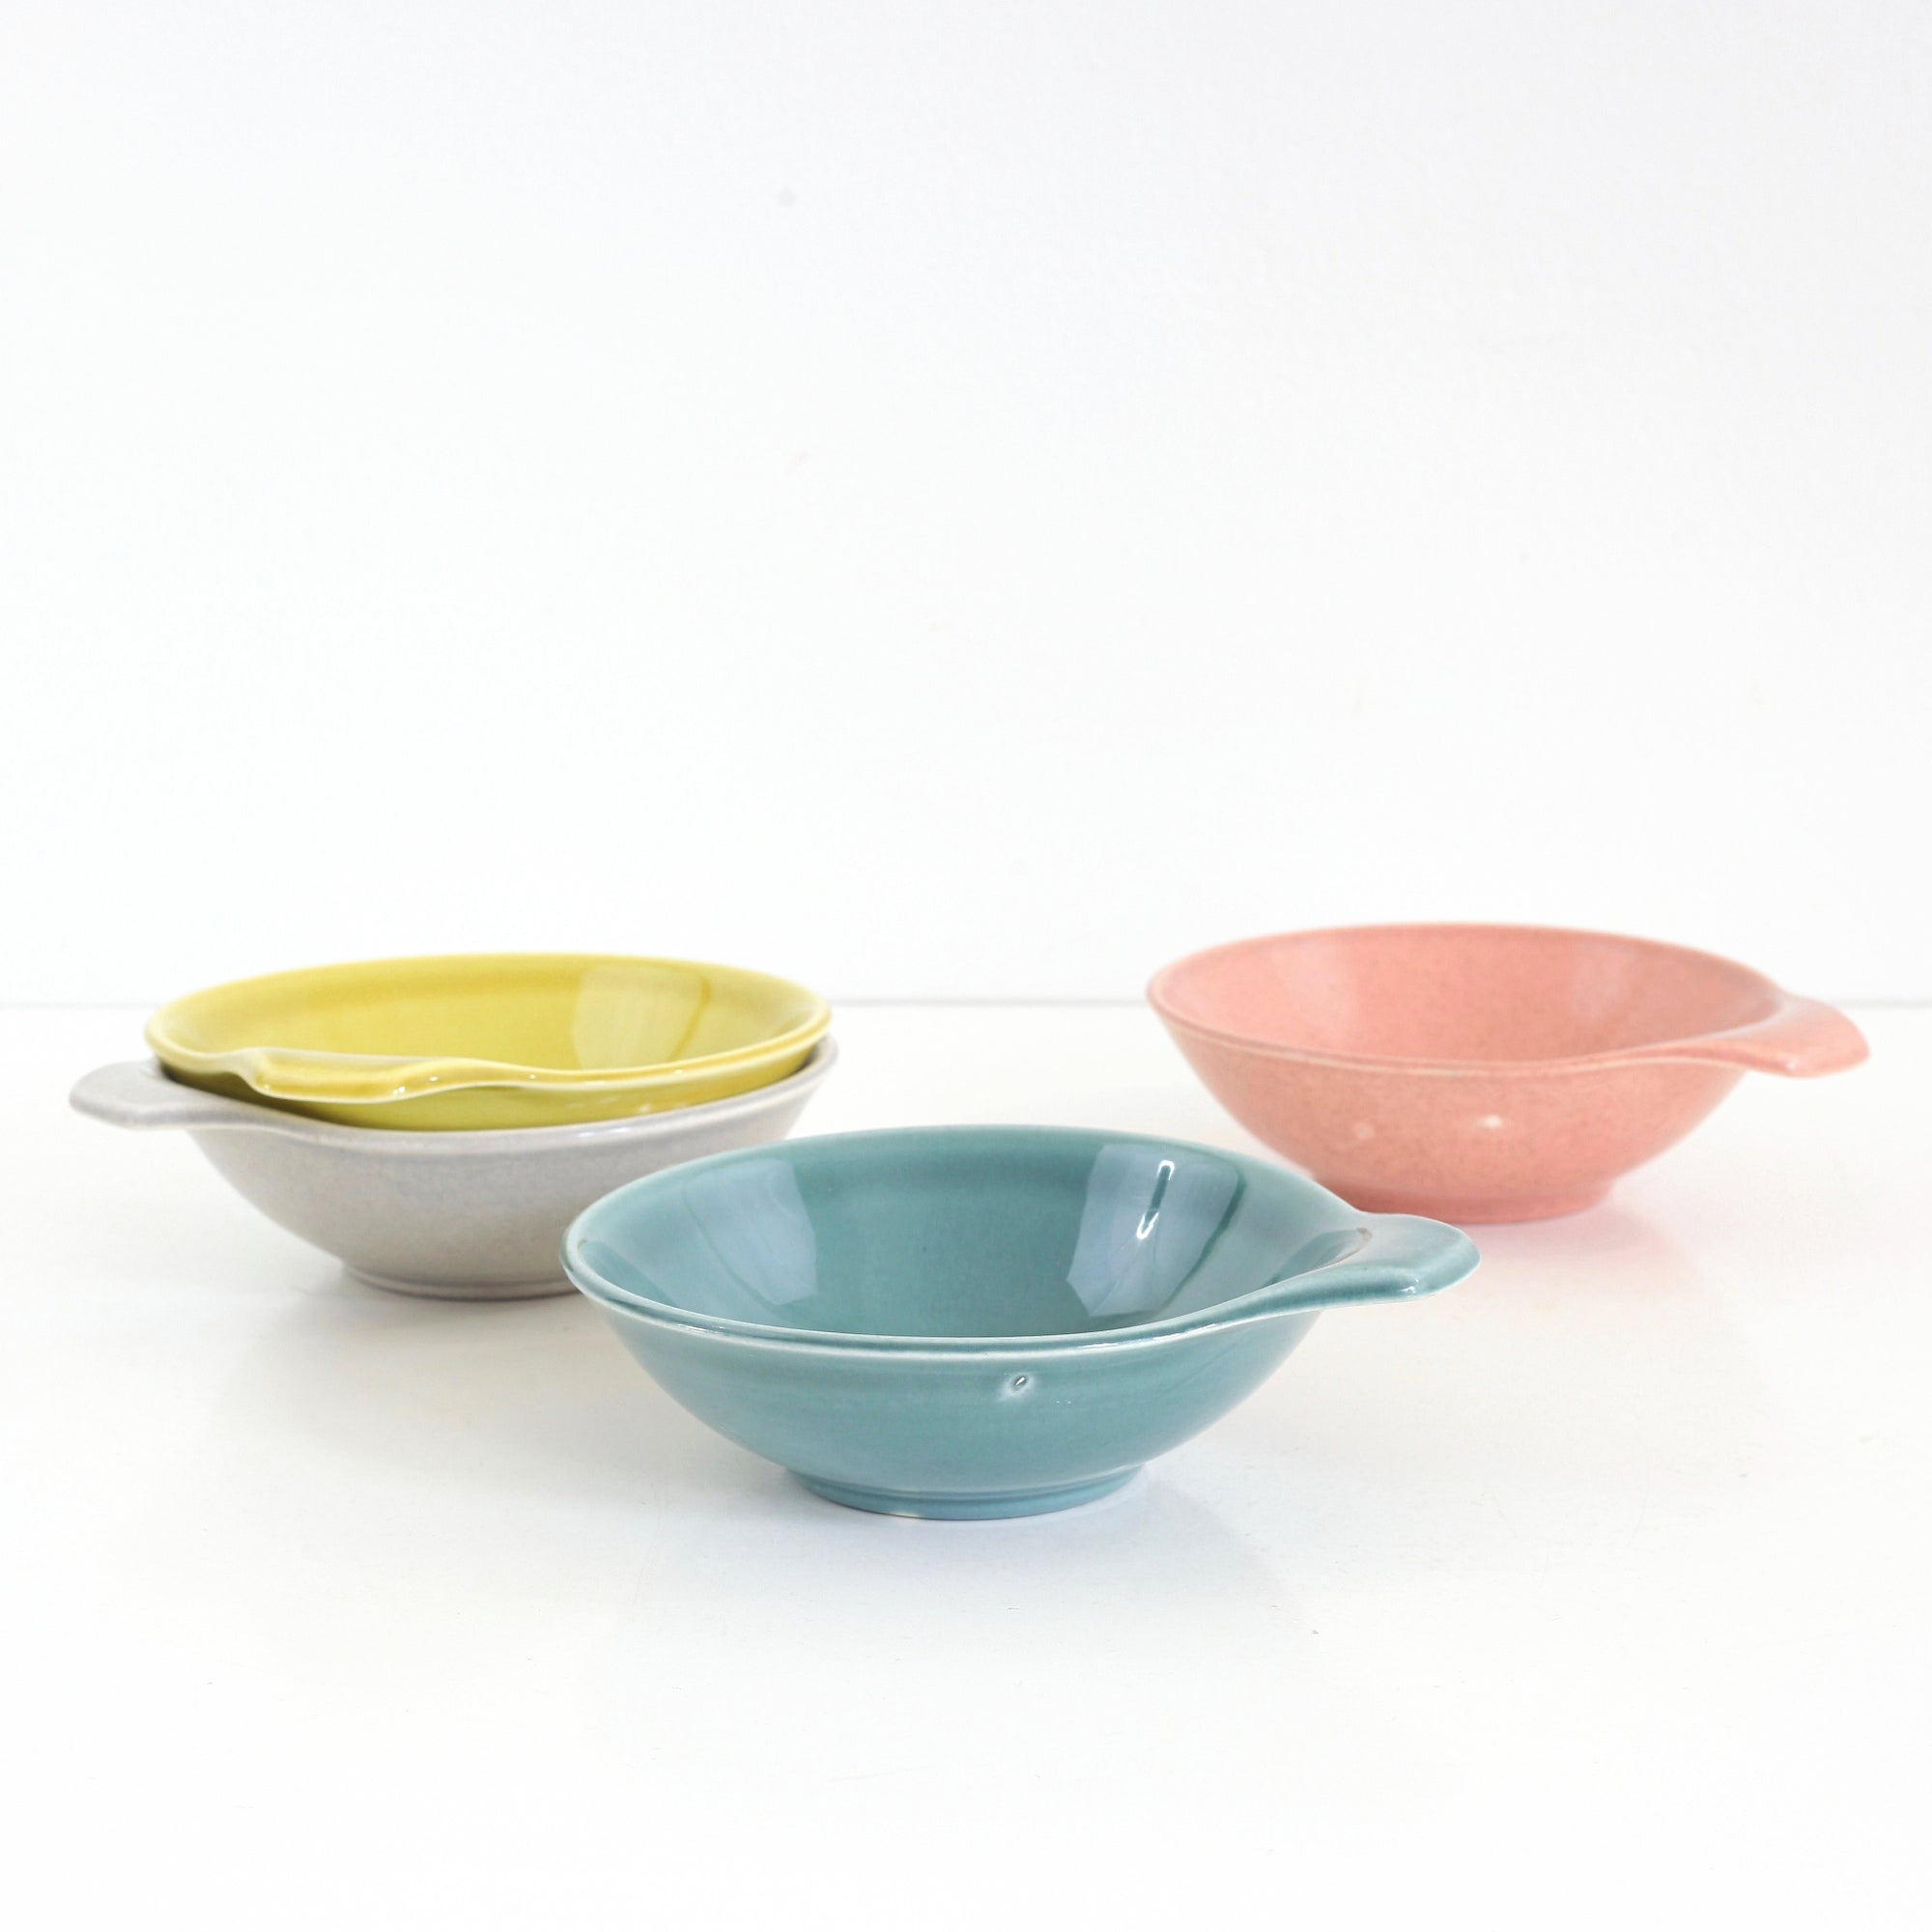 Mid Century American Modern Lug Handle Bowls by Russel Wright